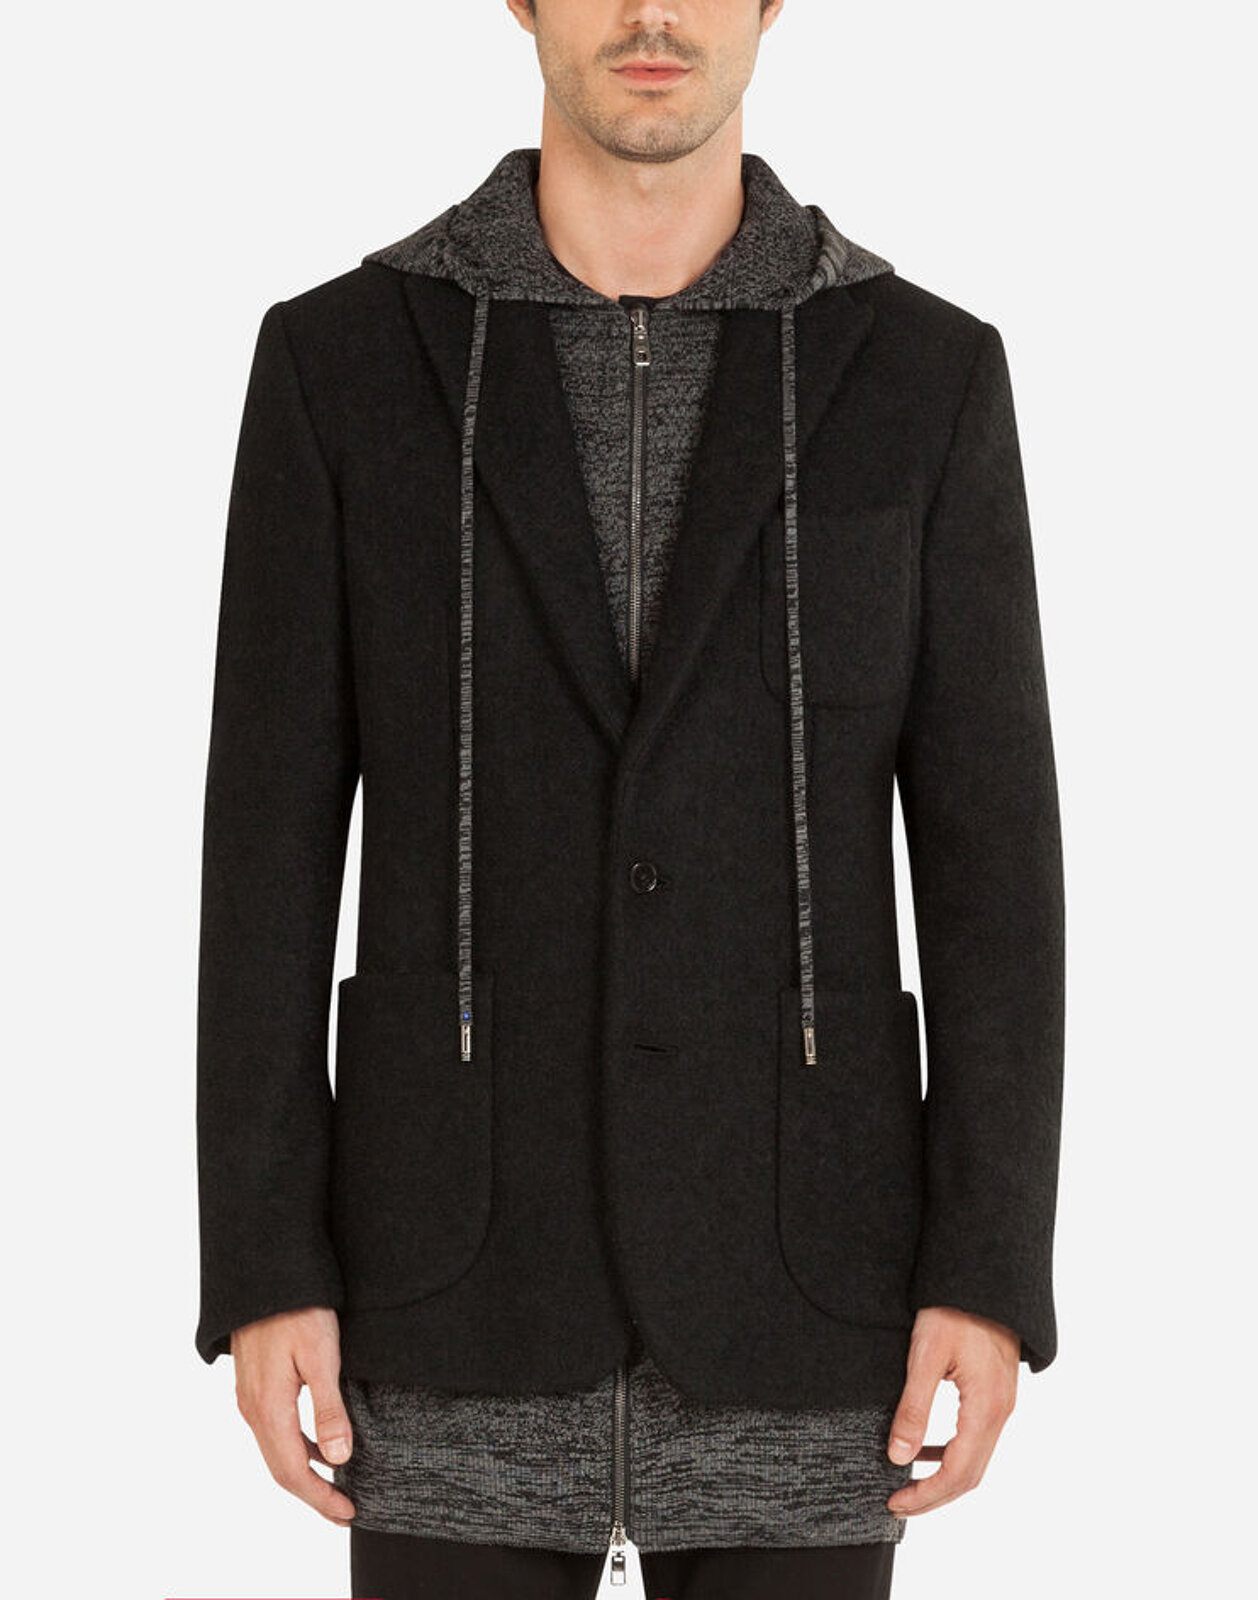 Wool Jacket With Knitted Cardigan - Dolce & Gabbana